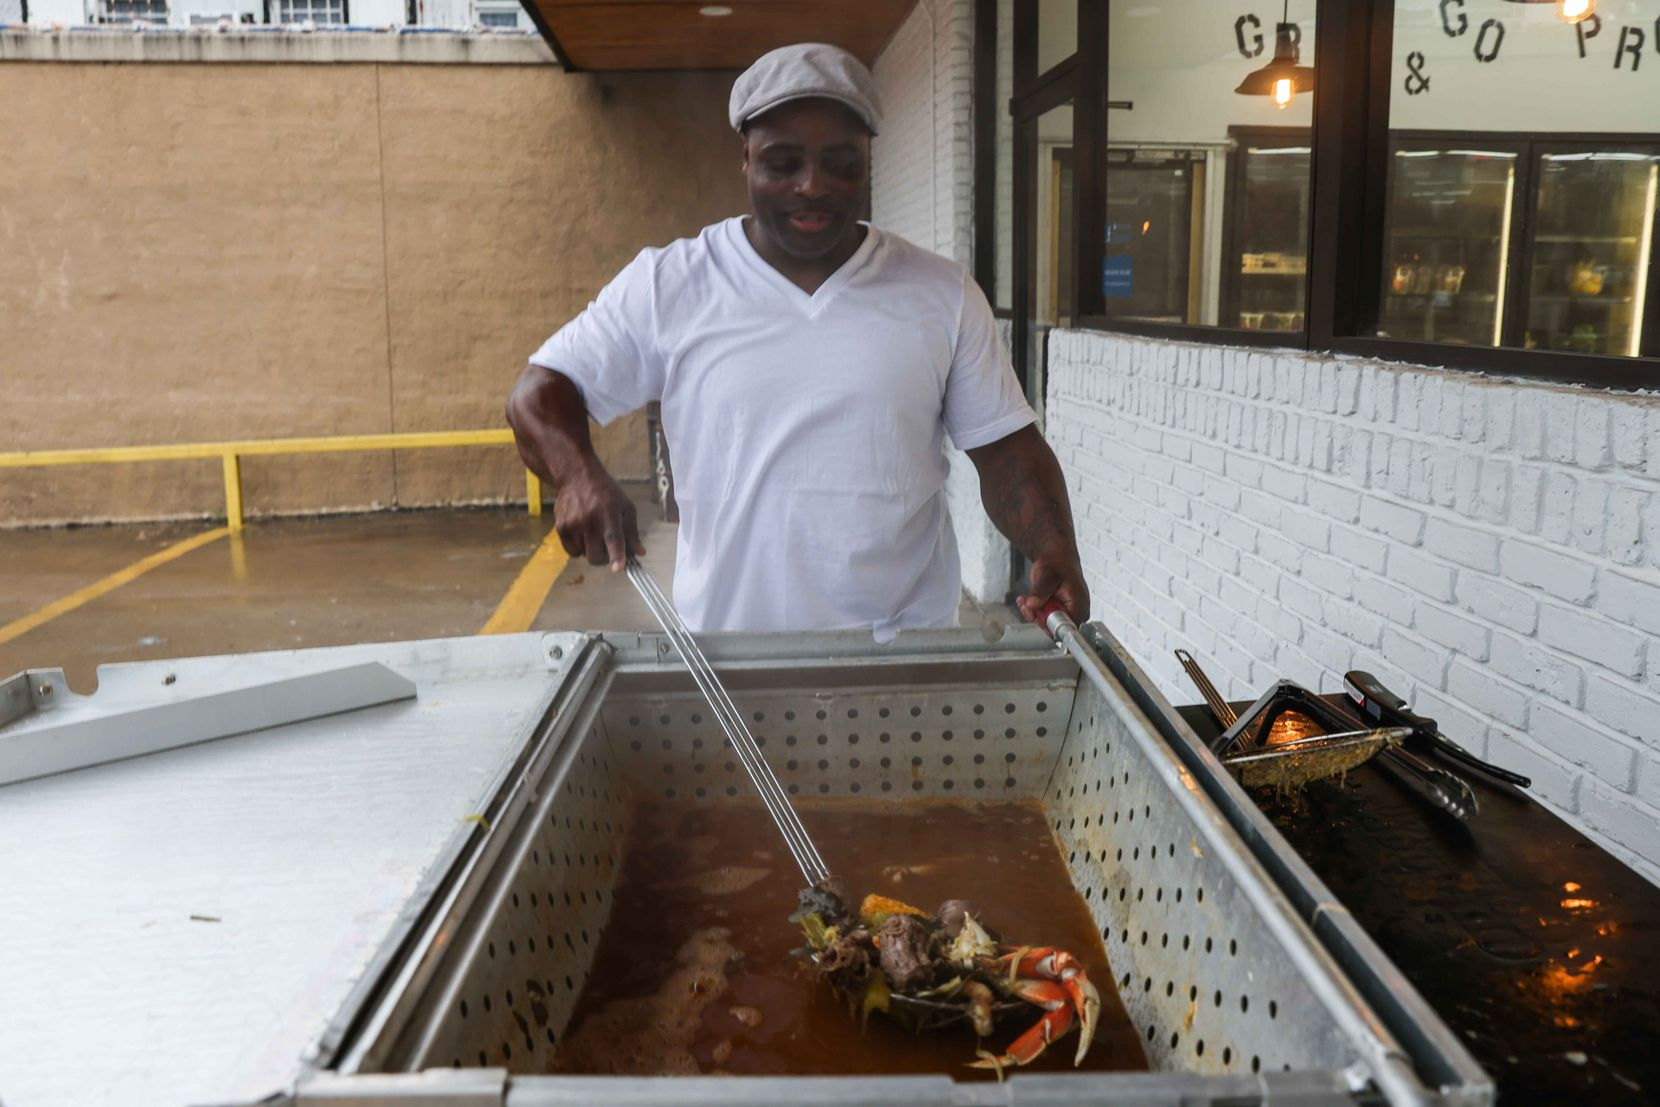 Eugene Vessel, owner of Sweet Grass Market, mixes up gumbo in front of the shop.